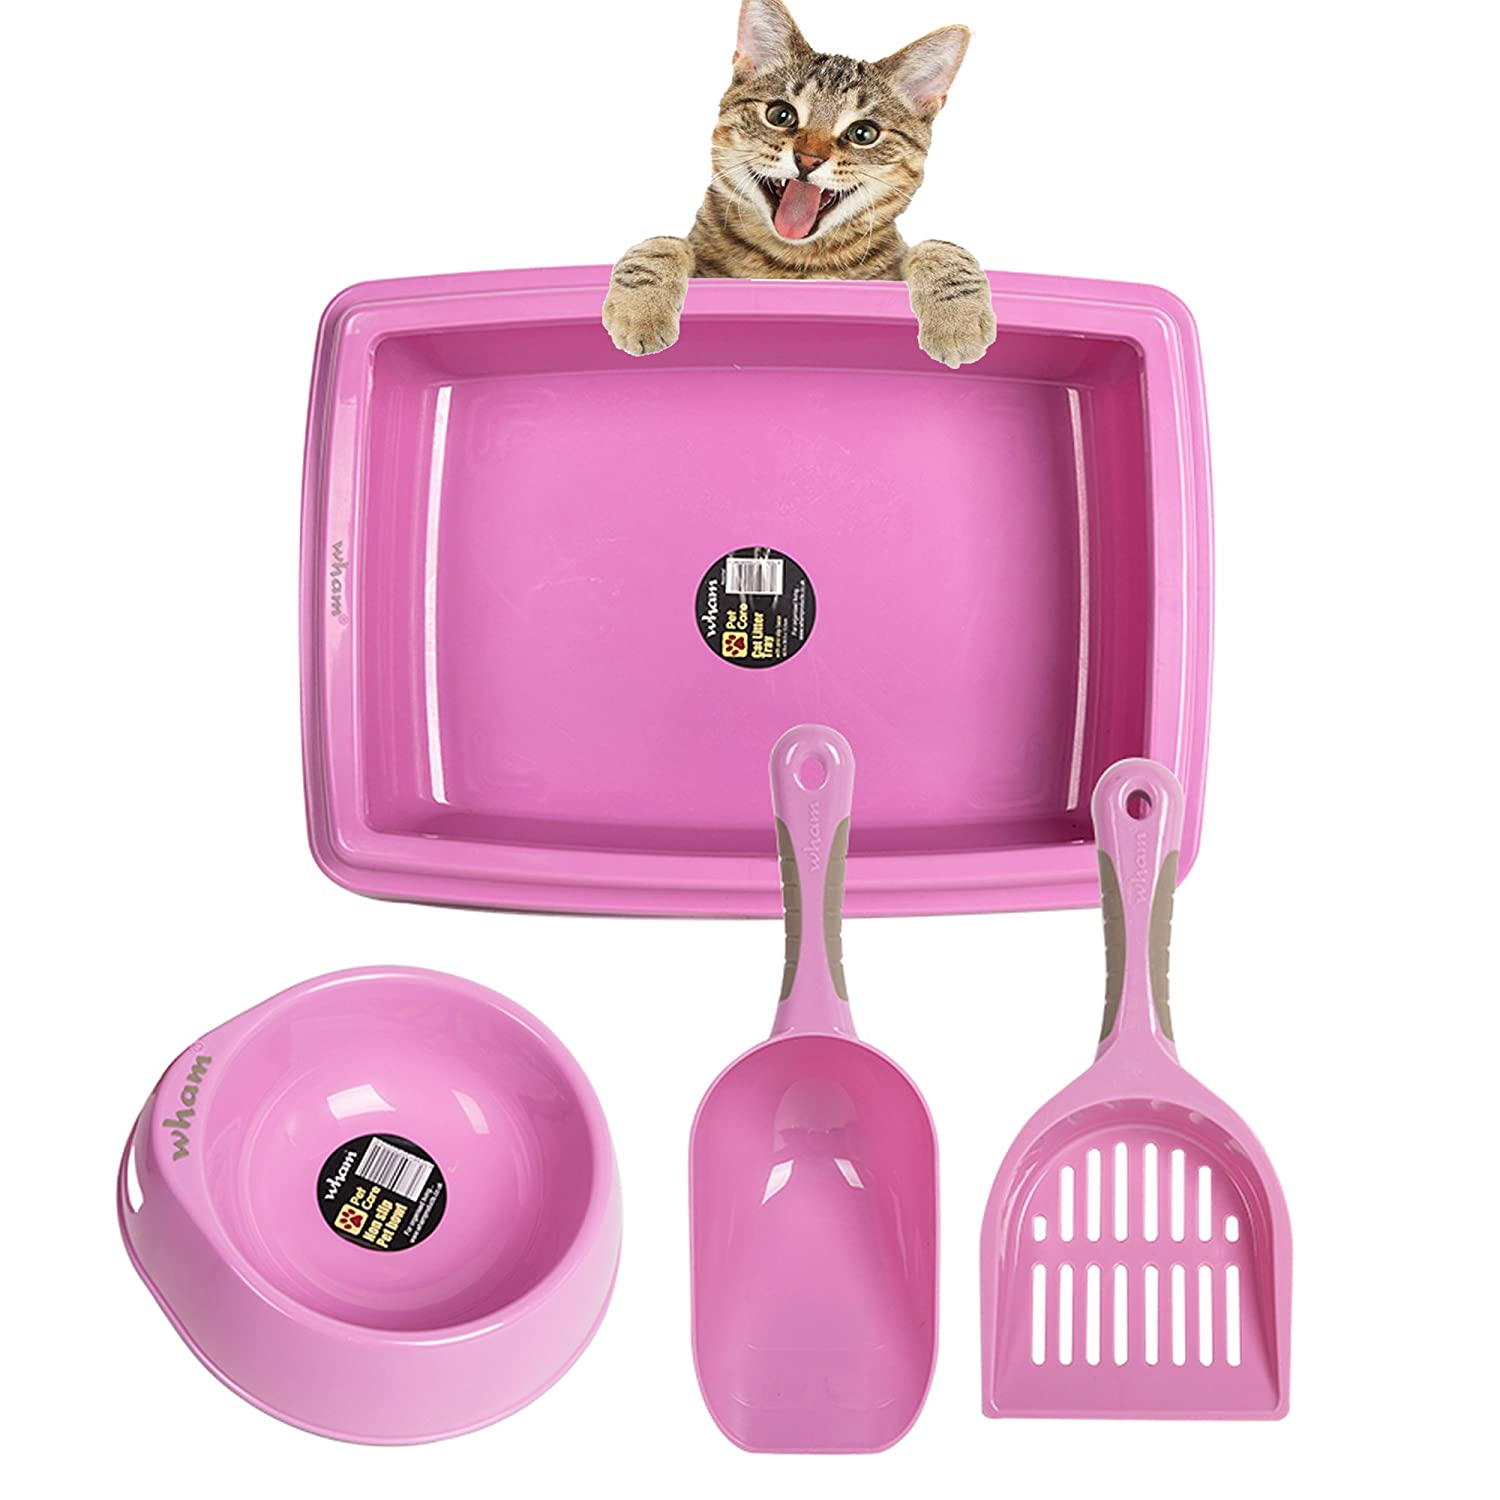 Lucky Tree 4 Color Cat Litter Pan Litter Box Plastic Cat Food Bowl with Scoop Shovel 4Pcs Pet Supplies Set for Cats